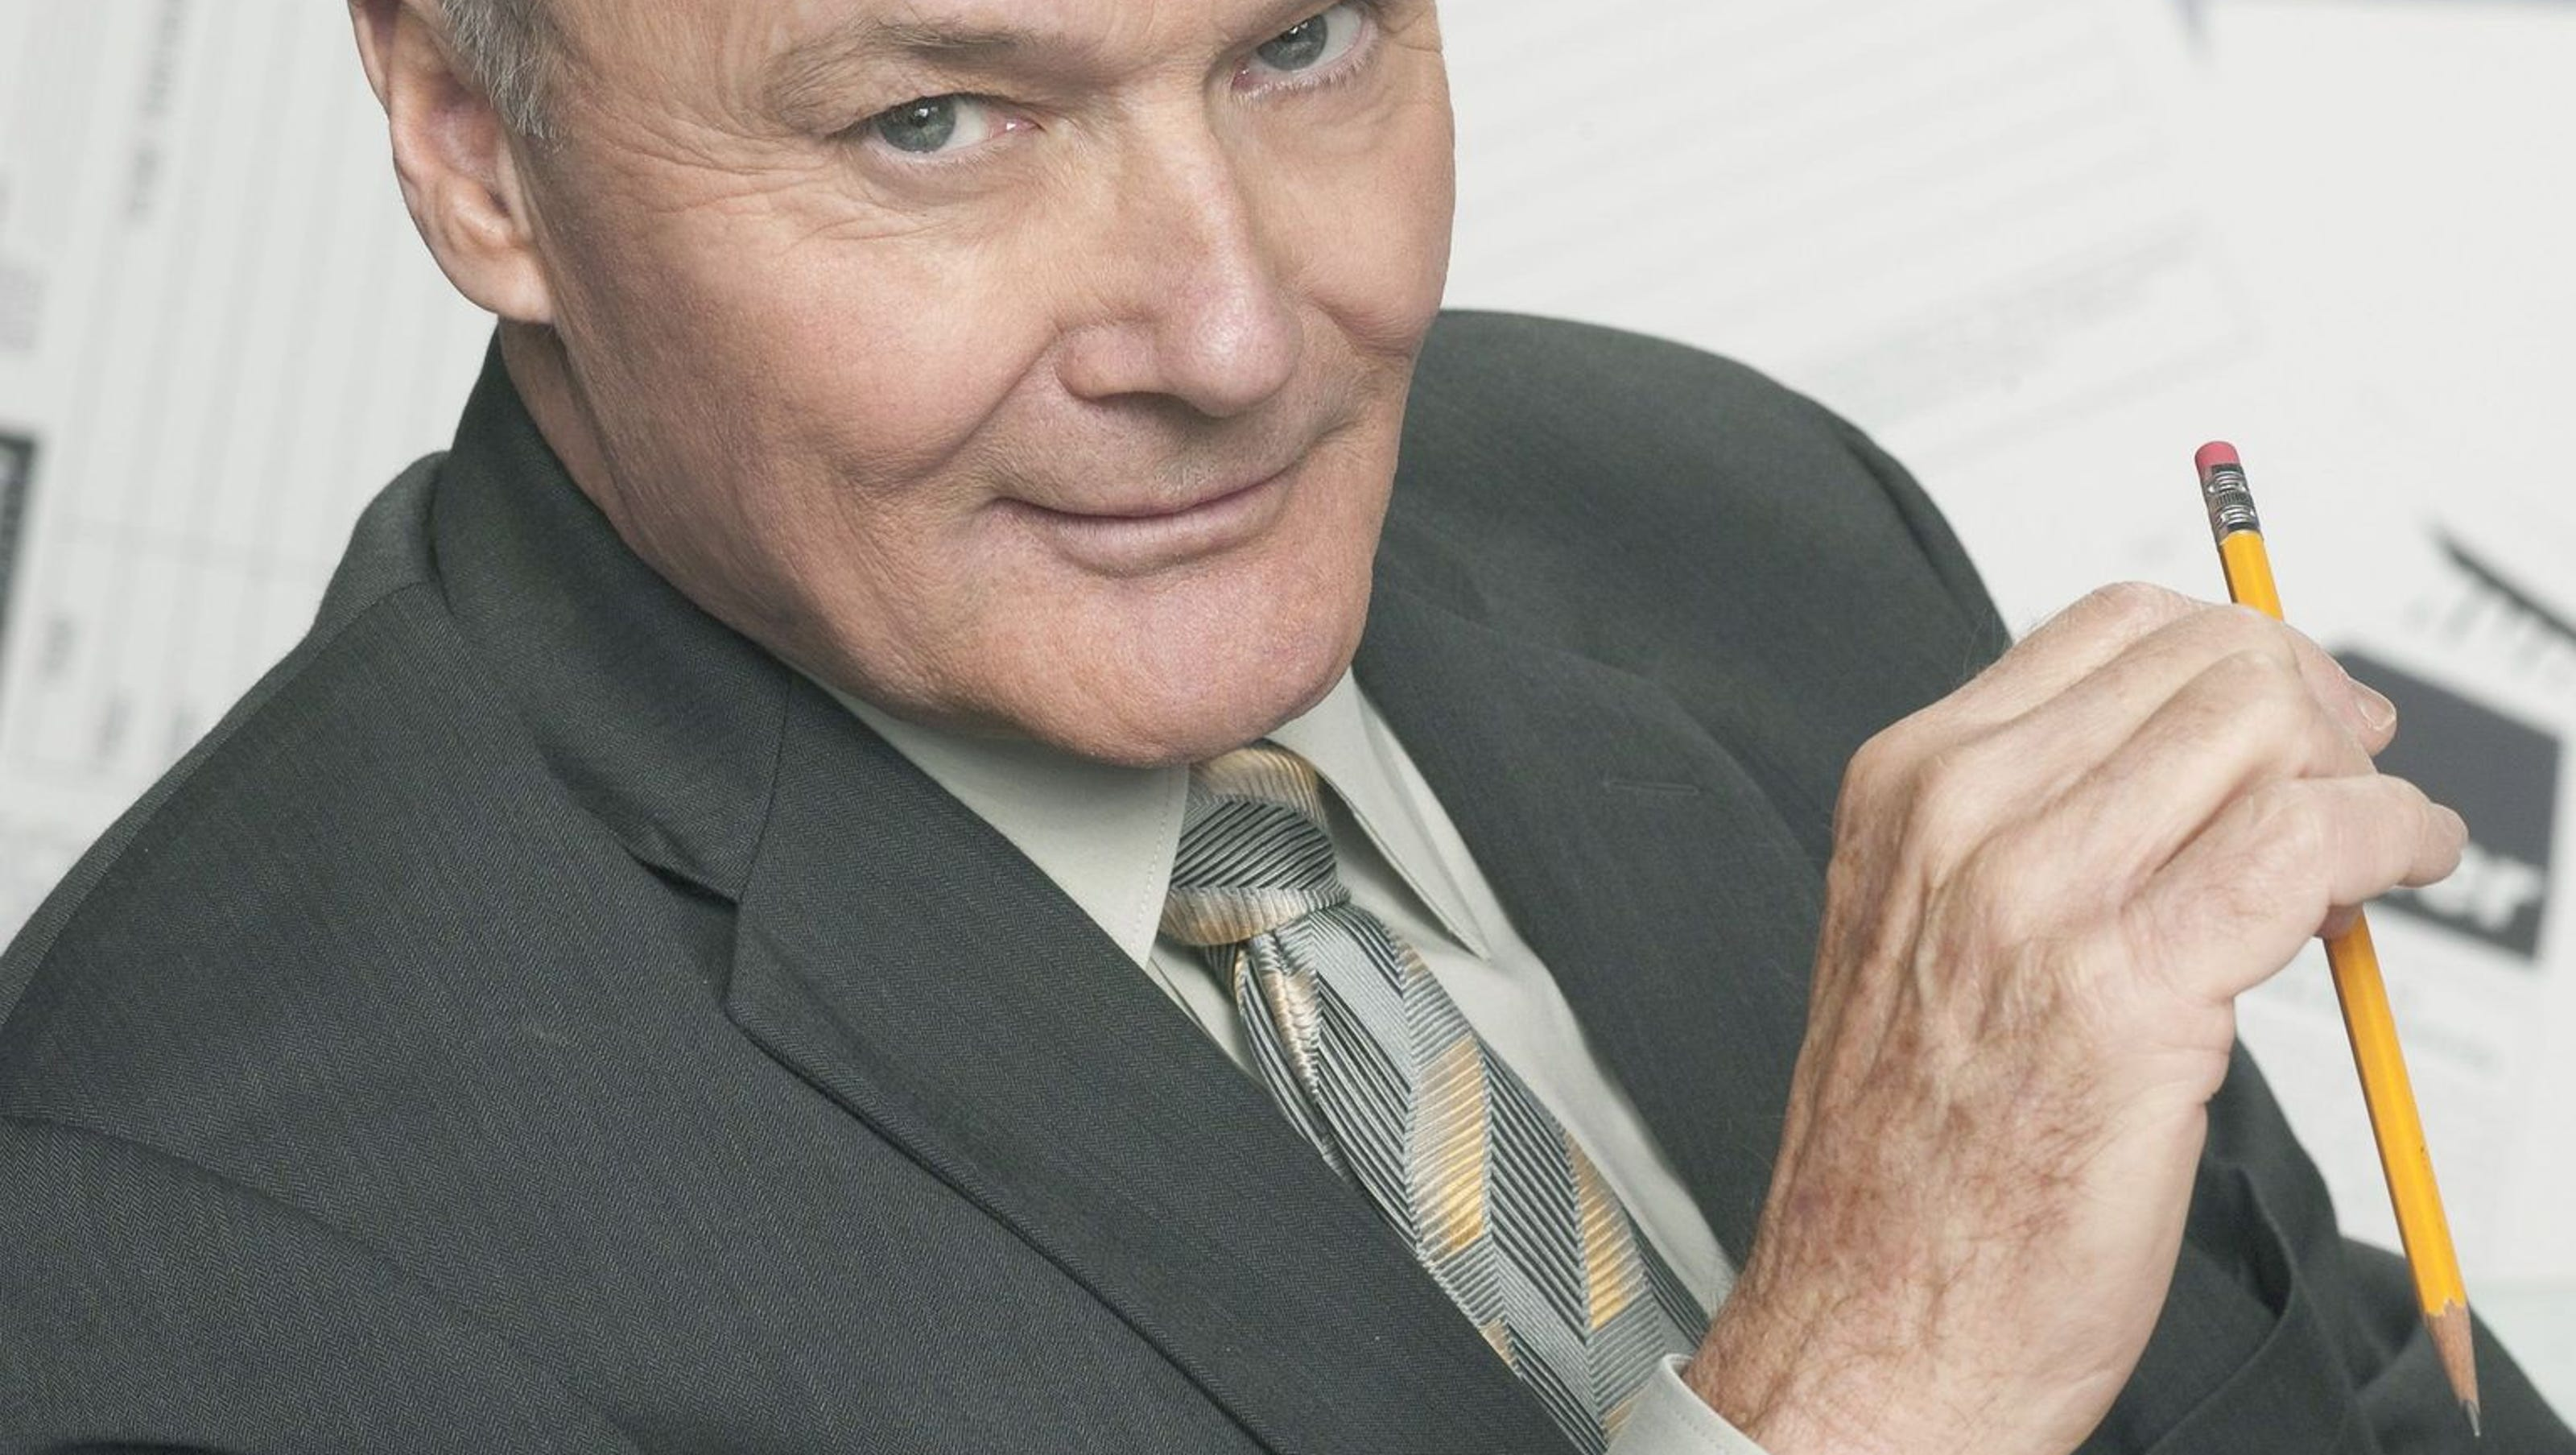 Creed Bratton: Creed Bratton Is Giving Us Life By Bringing His Tour To